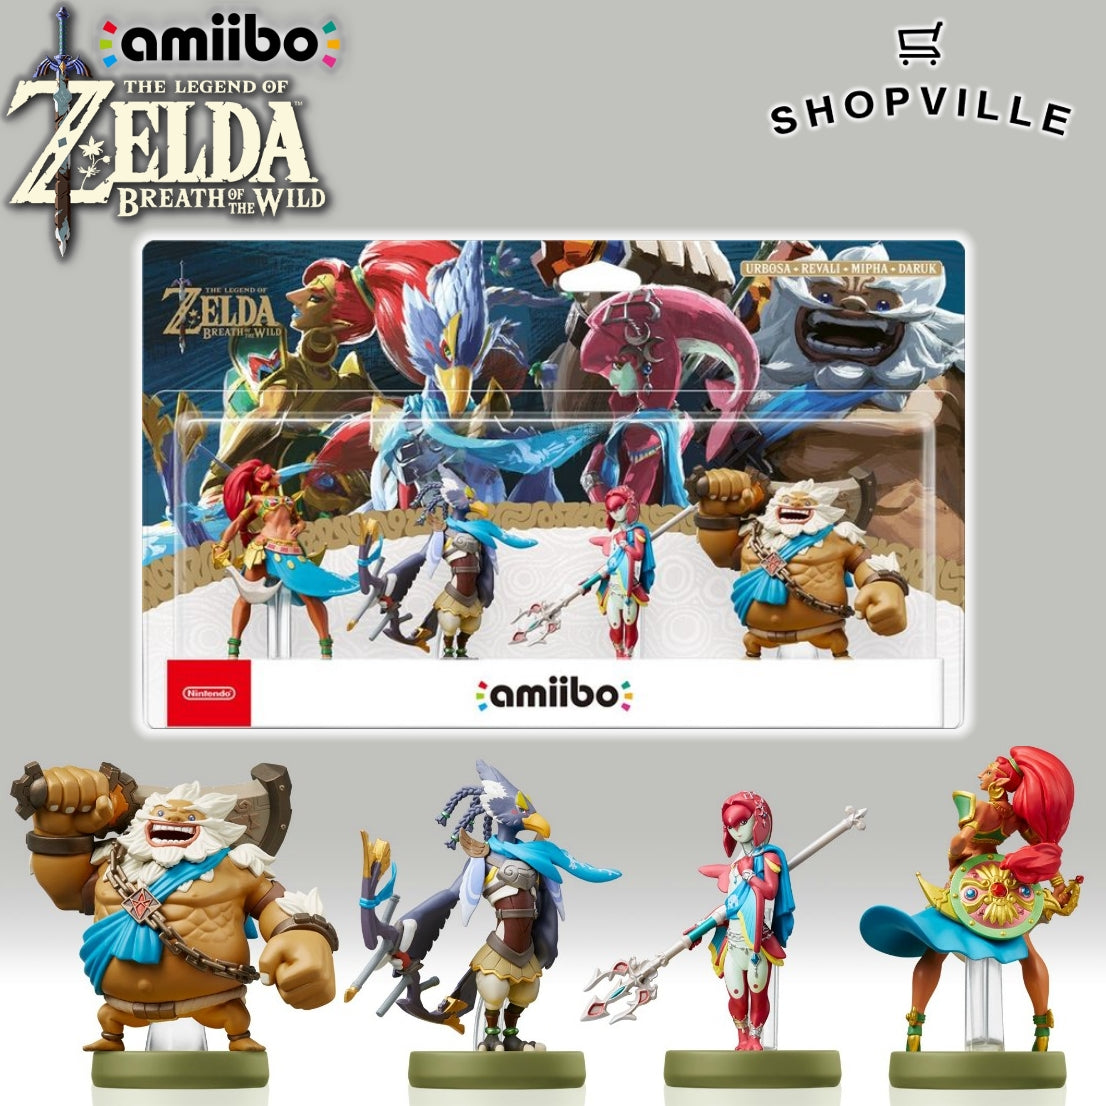 The Legend of Zelda: Breath of the Wild Champions Amiibo 4-Pack Giveaway